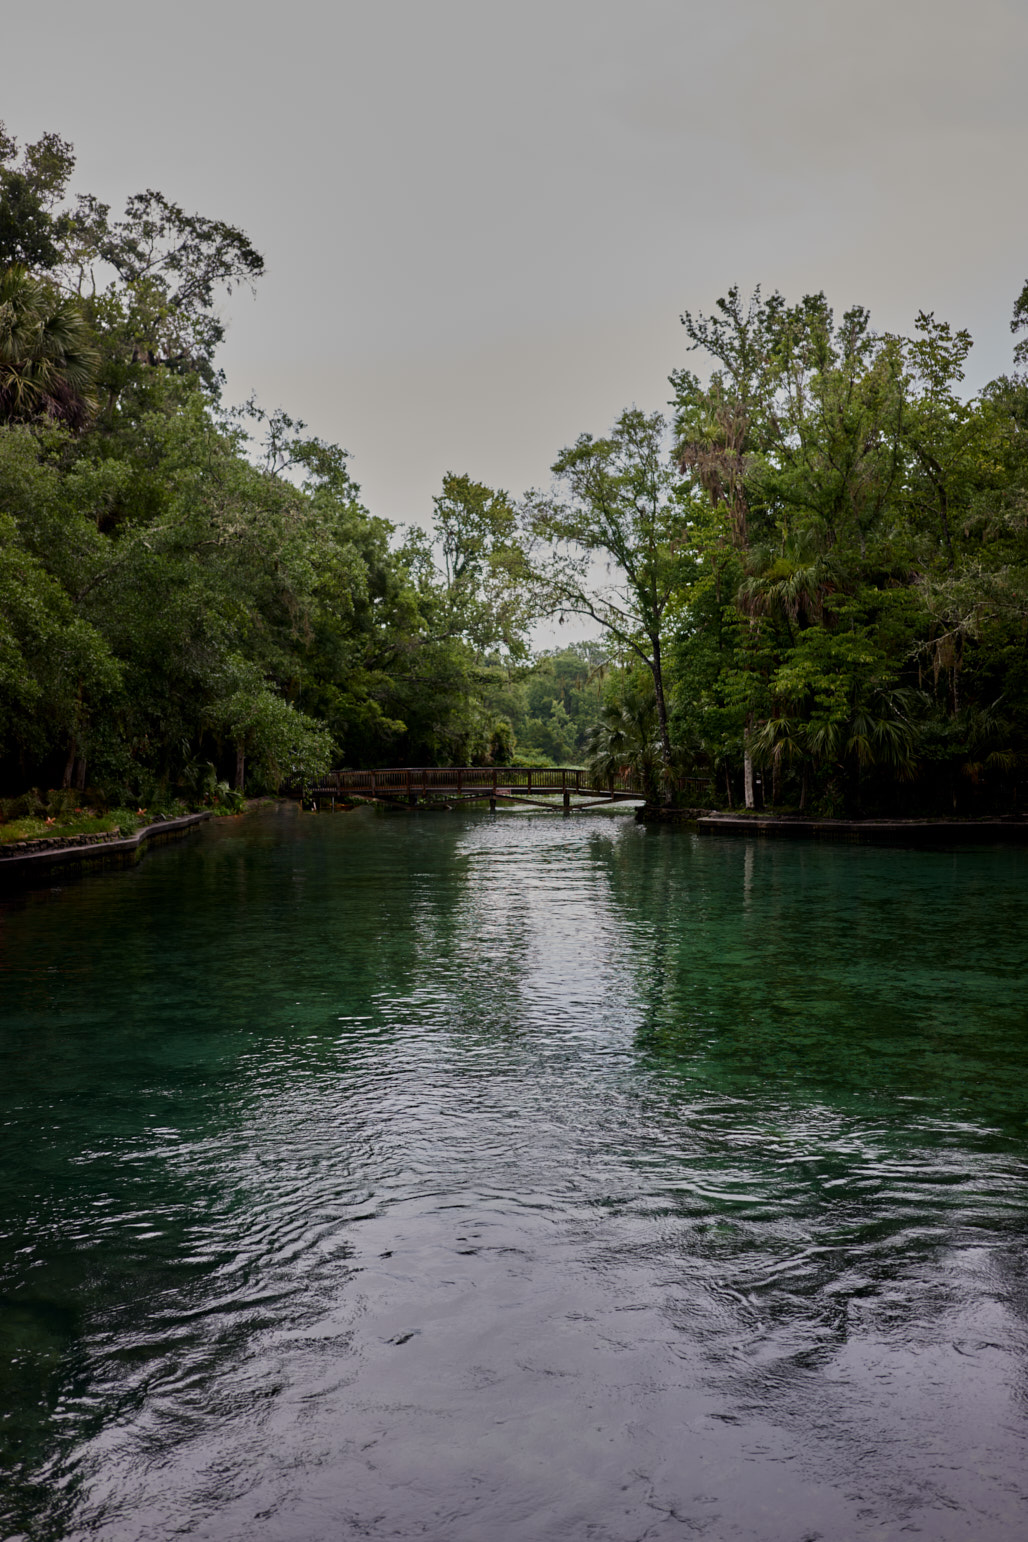 wekiva_springs_florida_jose_romero_photography_wordintown_DSC08112